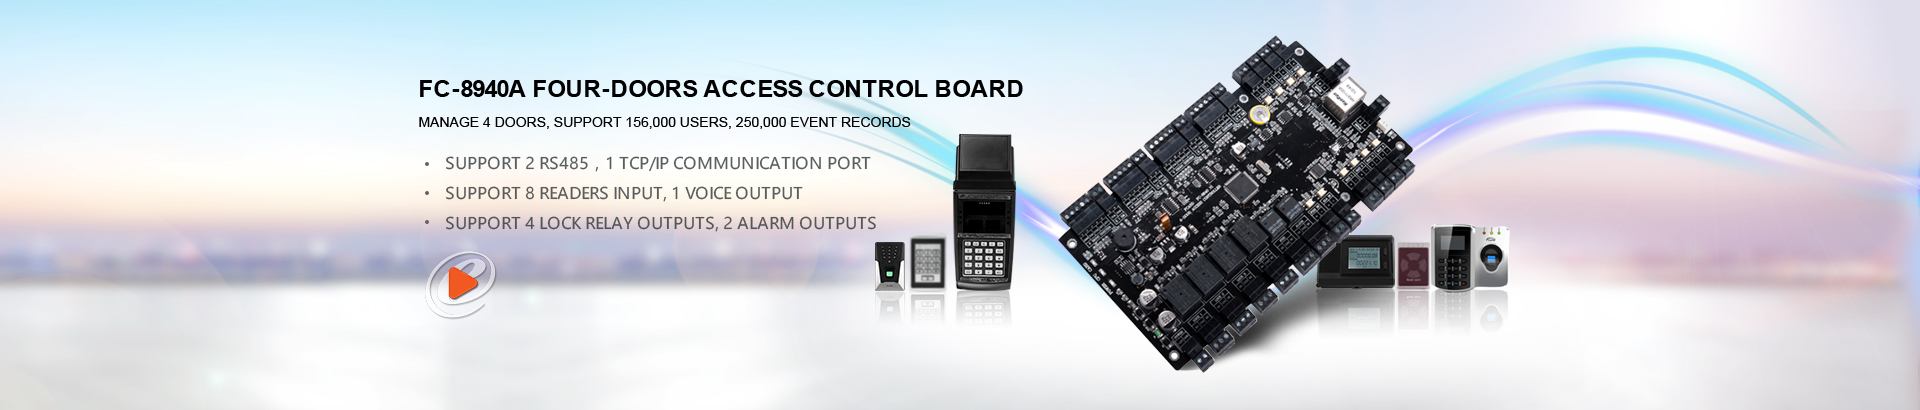 Four Doors Access Control Board